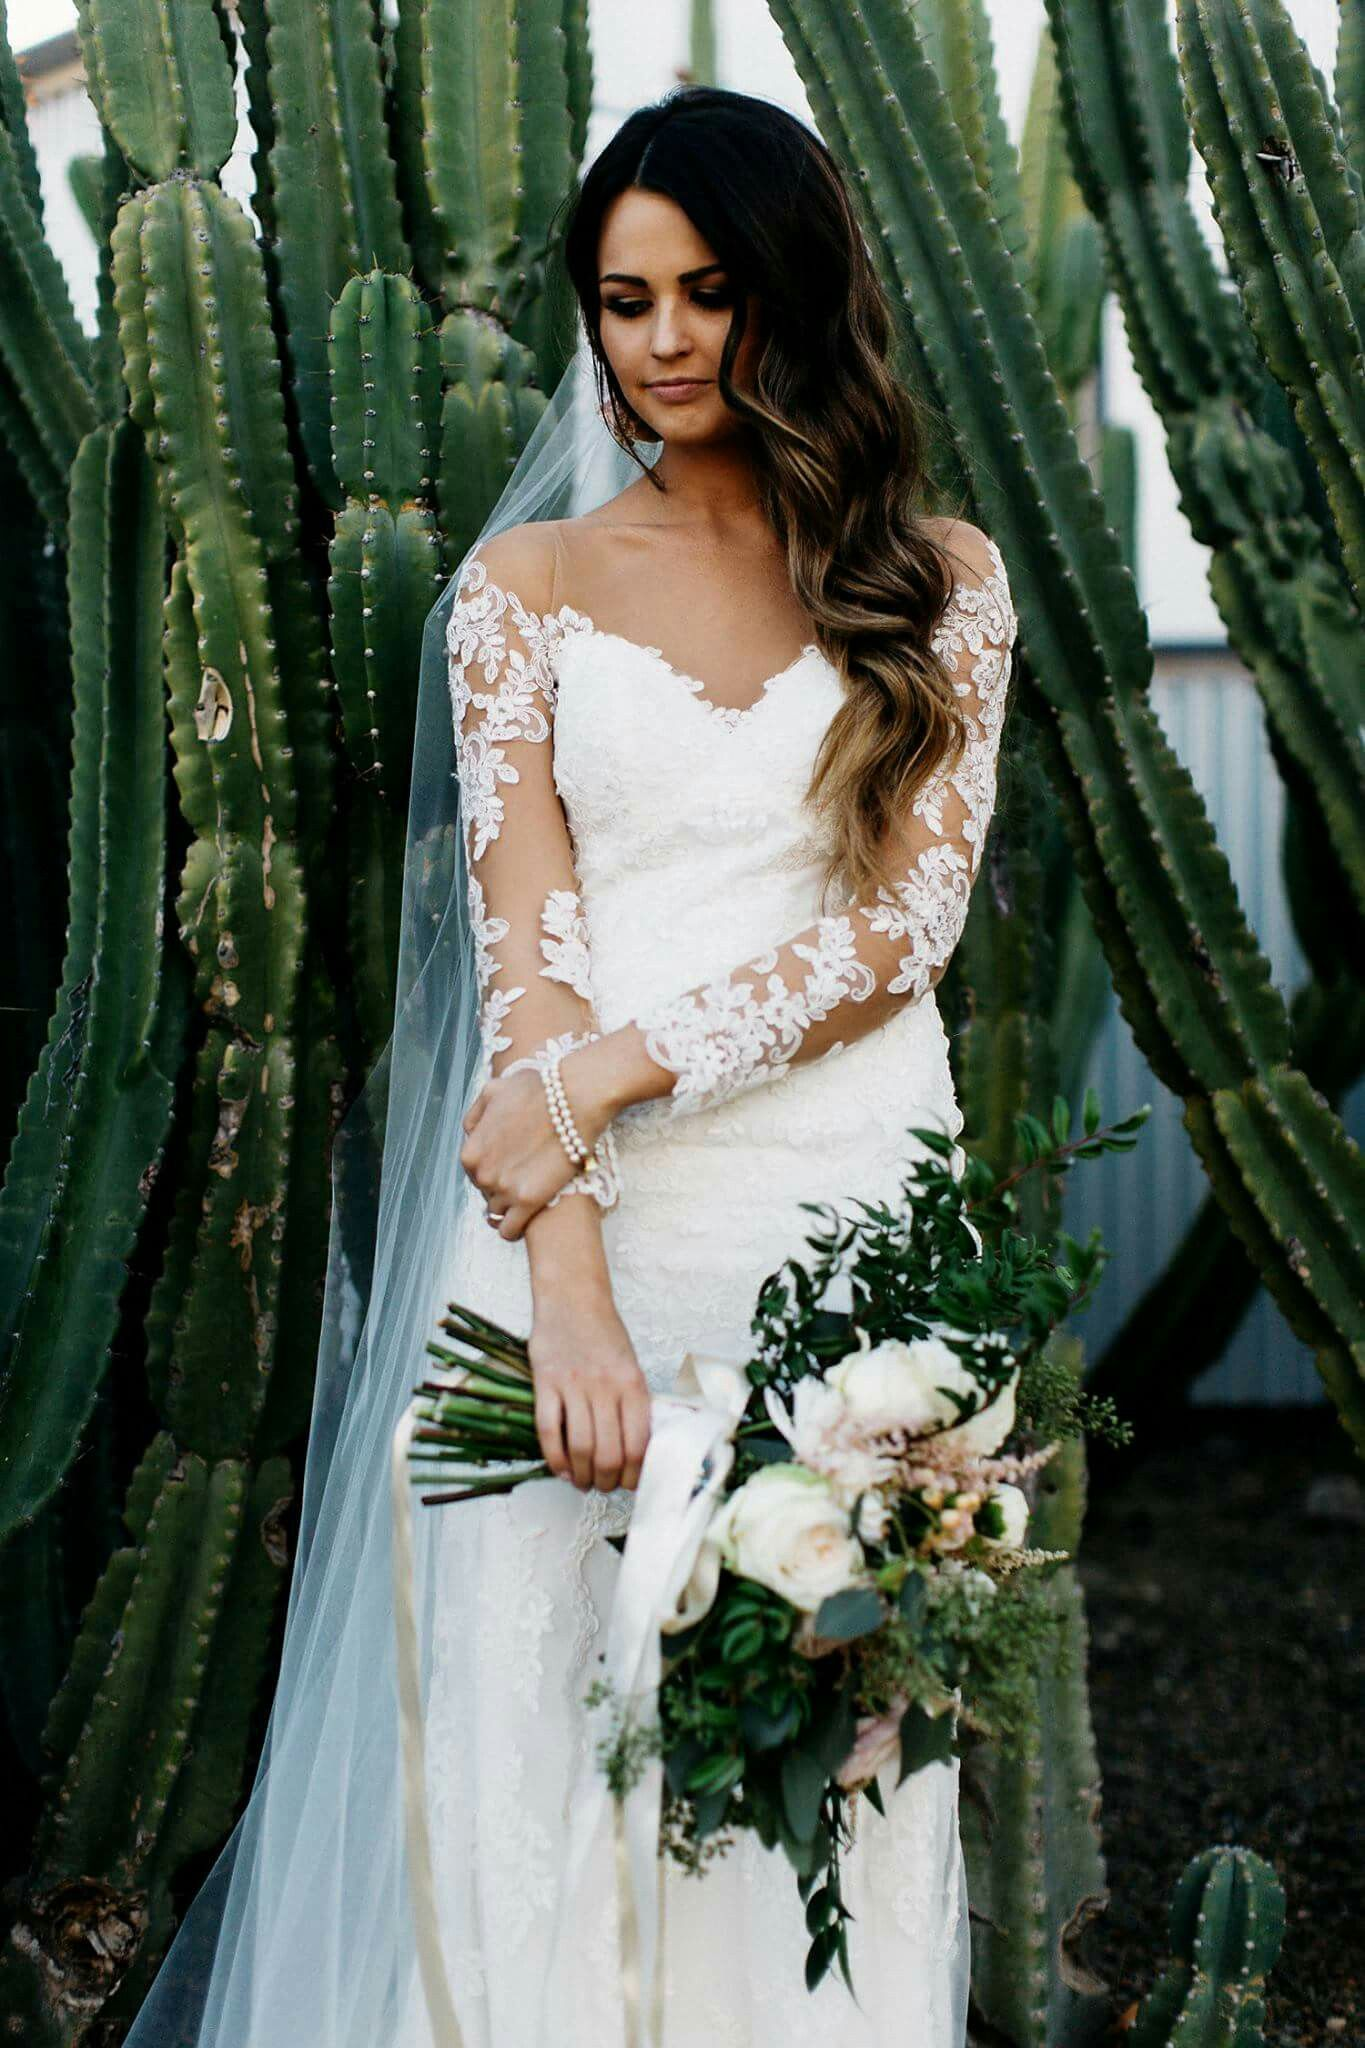 Wedding dresses with long sleeves  Pin by Carissa Spears on The White Dress and Boots  Pinterest